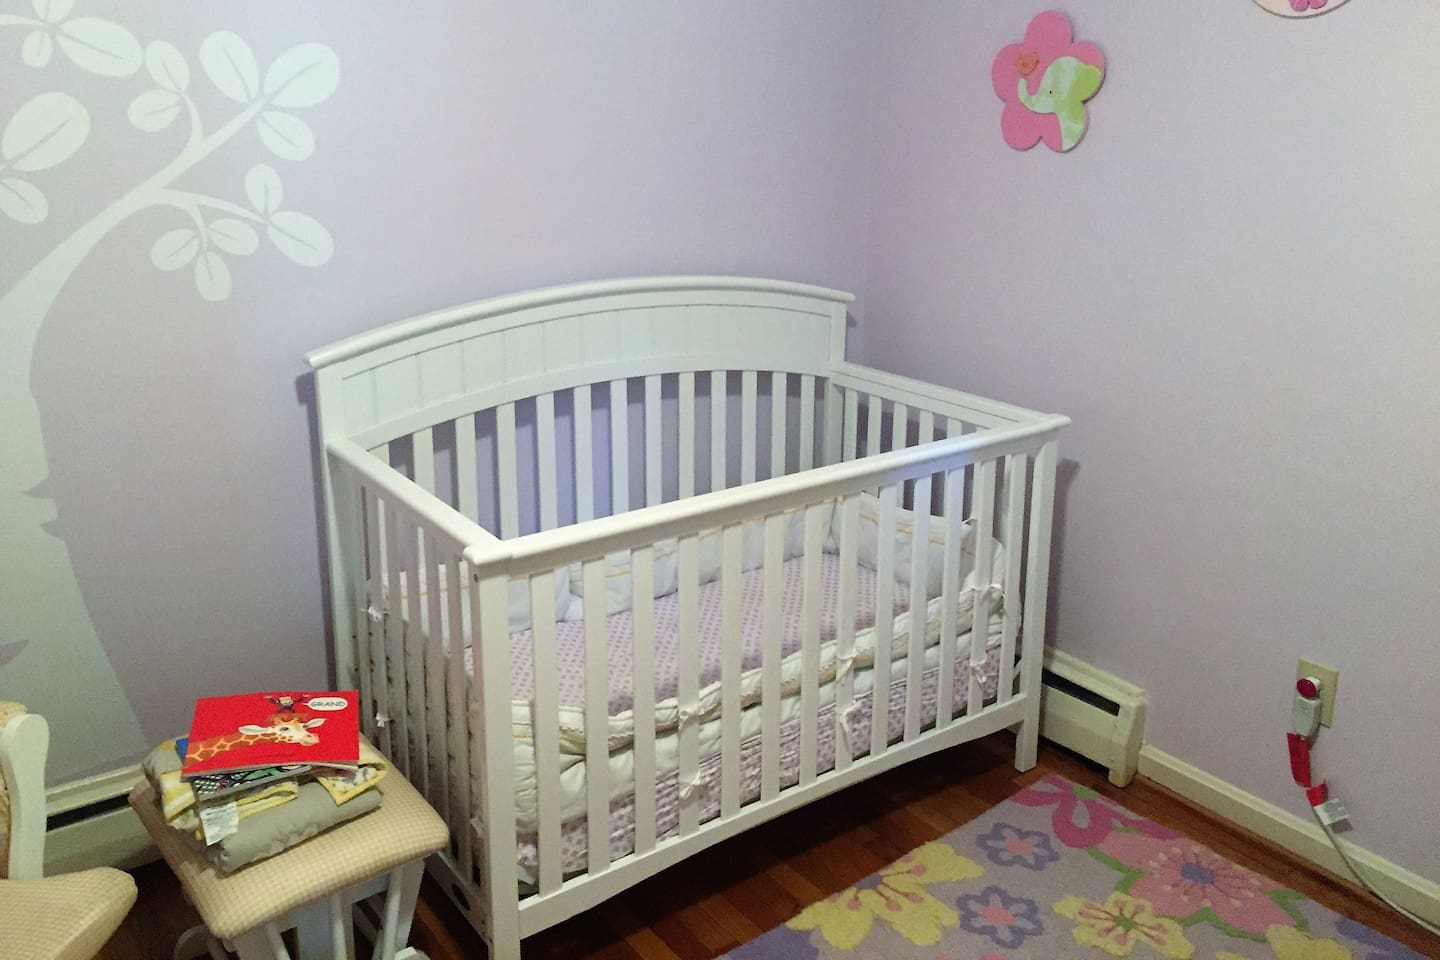 Kid's room with crib or kid's bed available